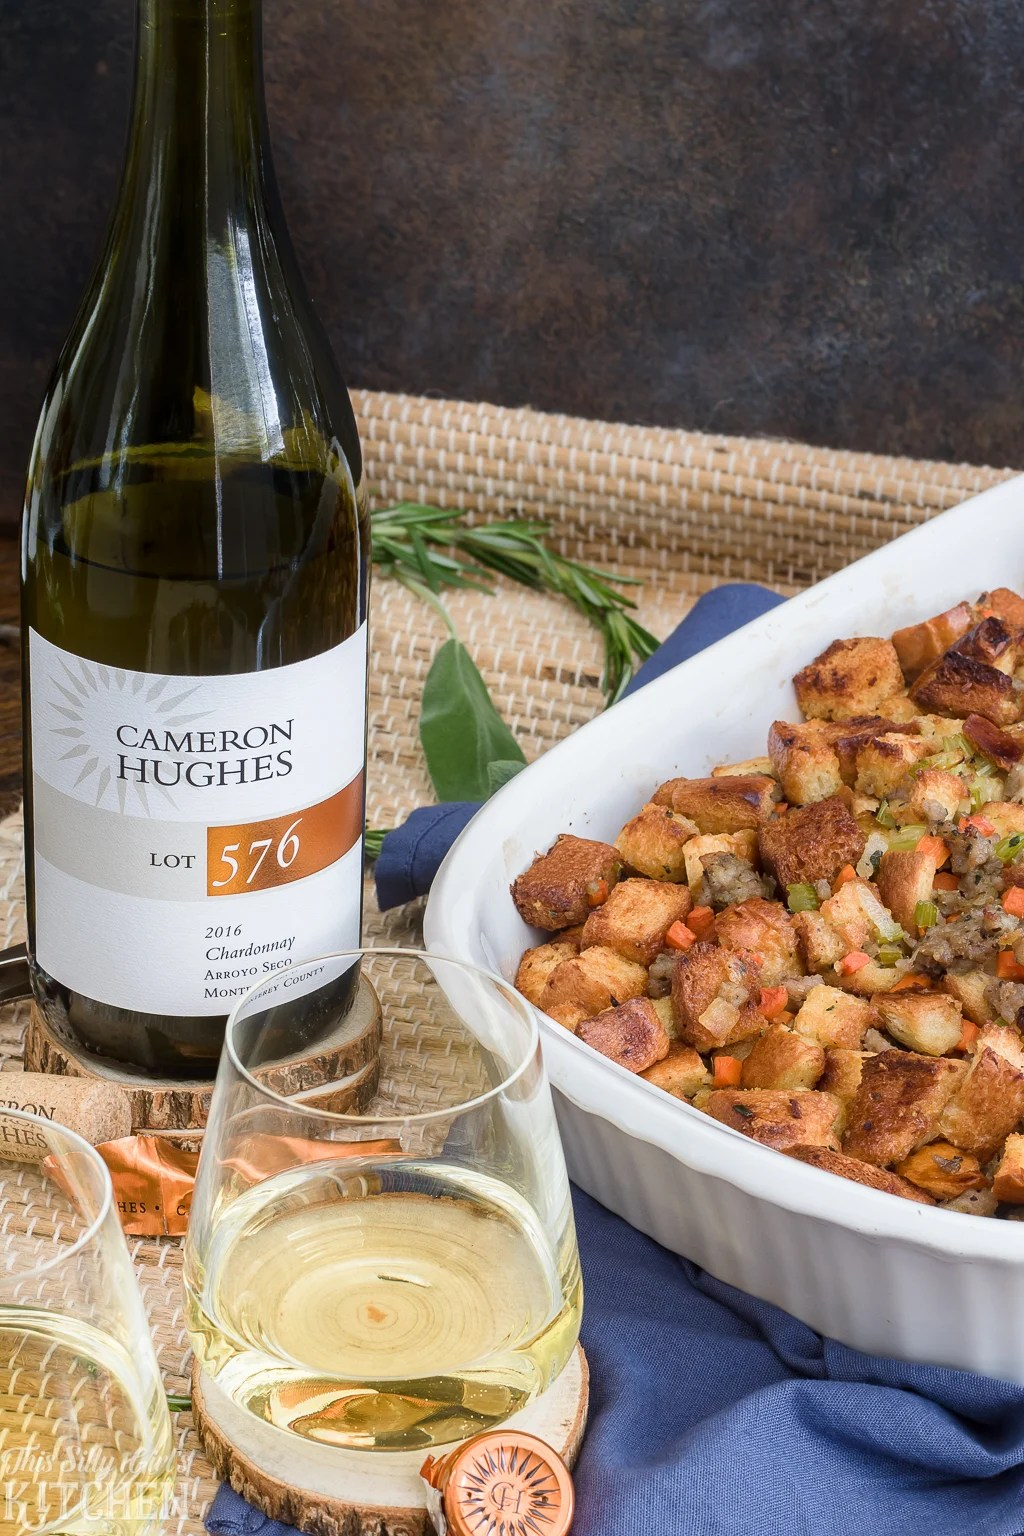 Bottle of wine and glass next to stuffing in casserole dish